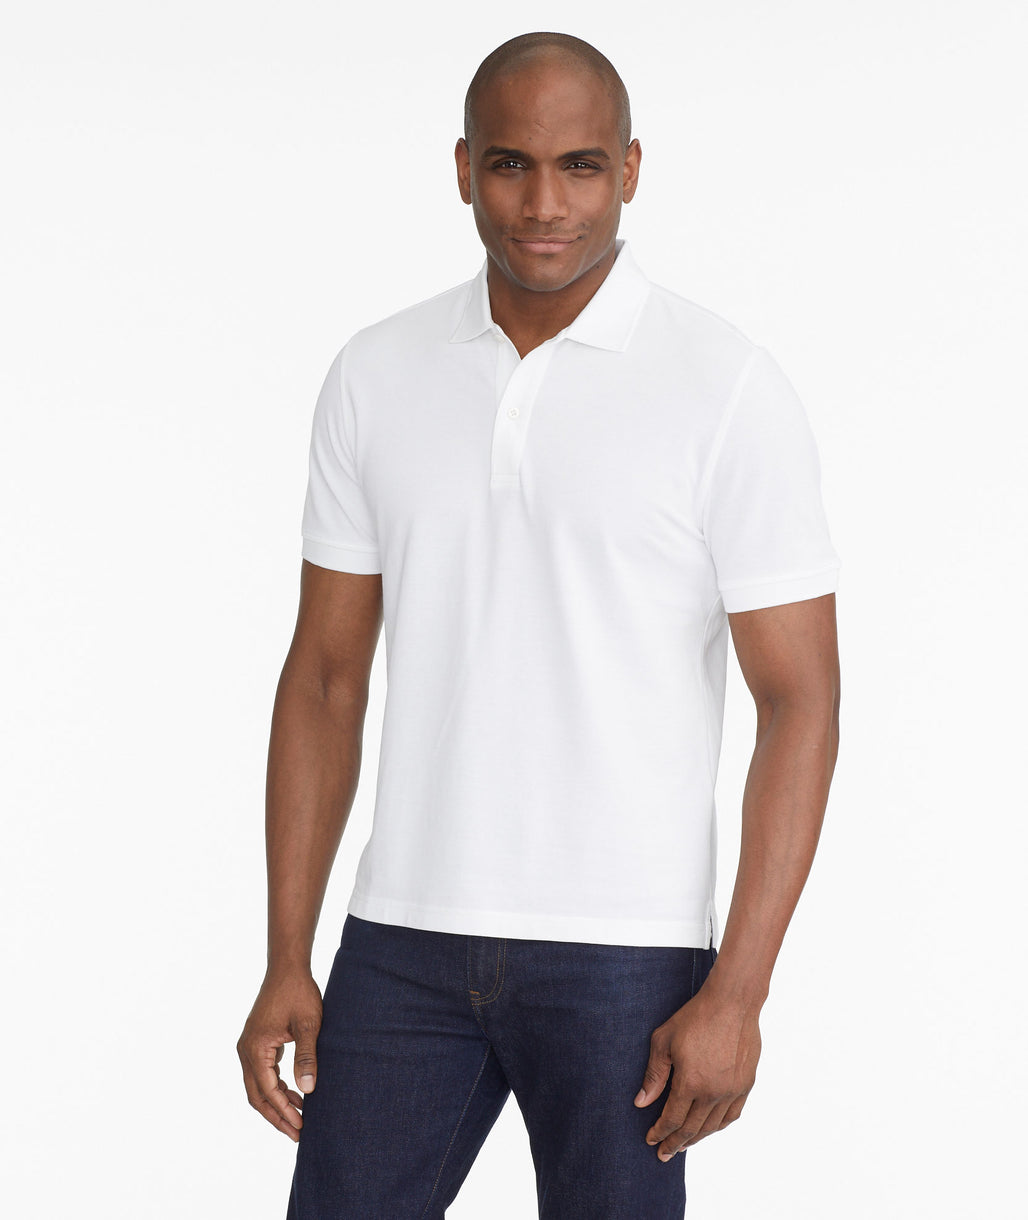 Model wearing a White The Classic Pique Polo